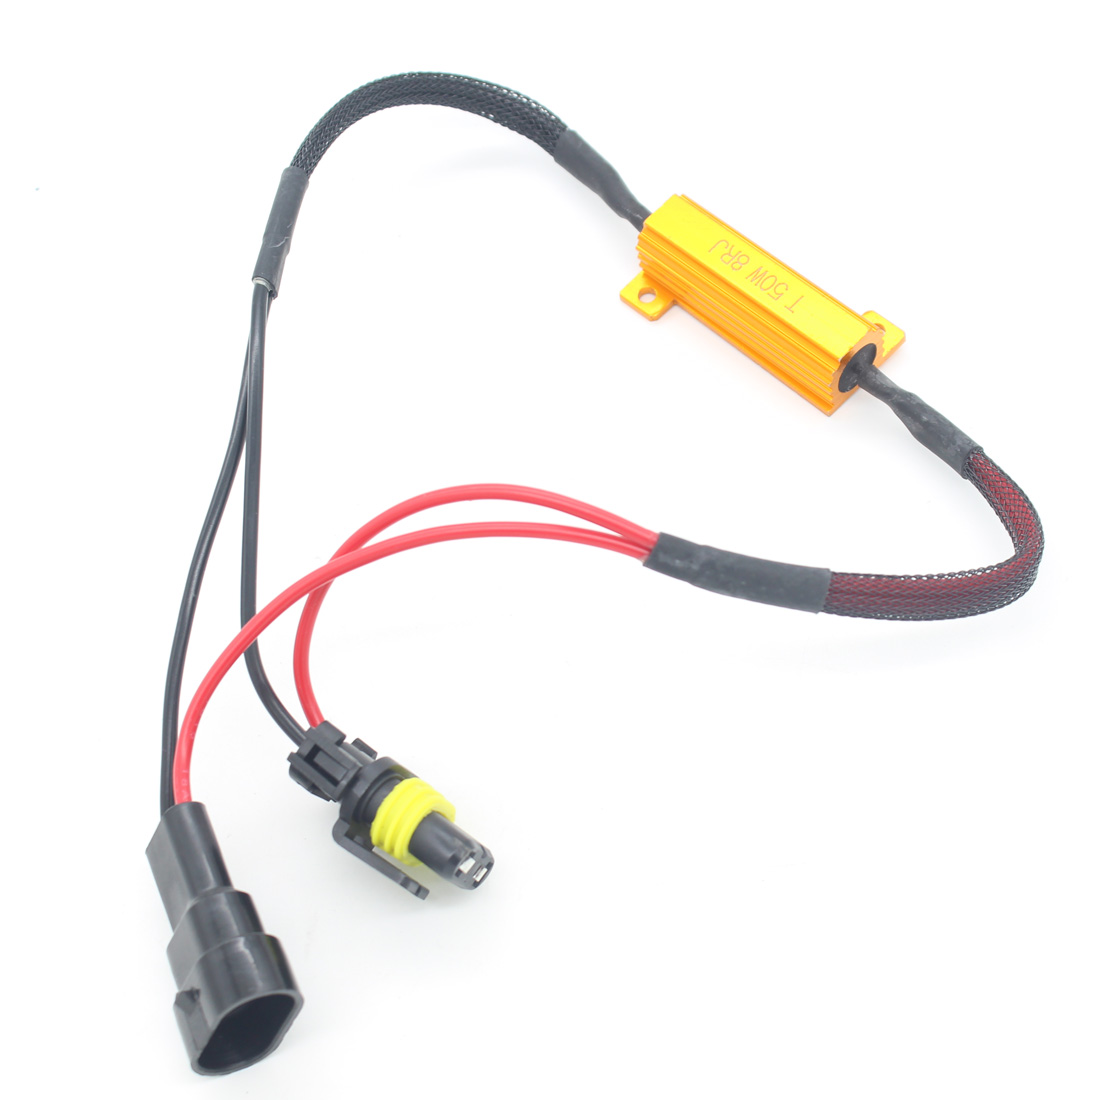 Car LED Fog Light lamp Load Resistor Canbus Error Free Wiring Canceller Decoder 9006 HB4 Car Styling Motorbike DRL Xenon HID 2pcs car led headlight decoder fog light drl no error load resistor no flickering warning canceller 9005 9006 hb3 hb4